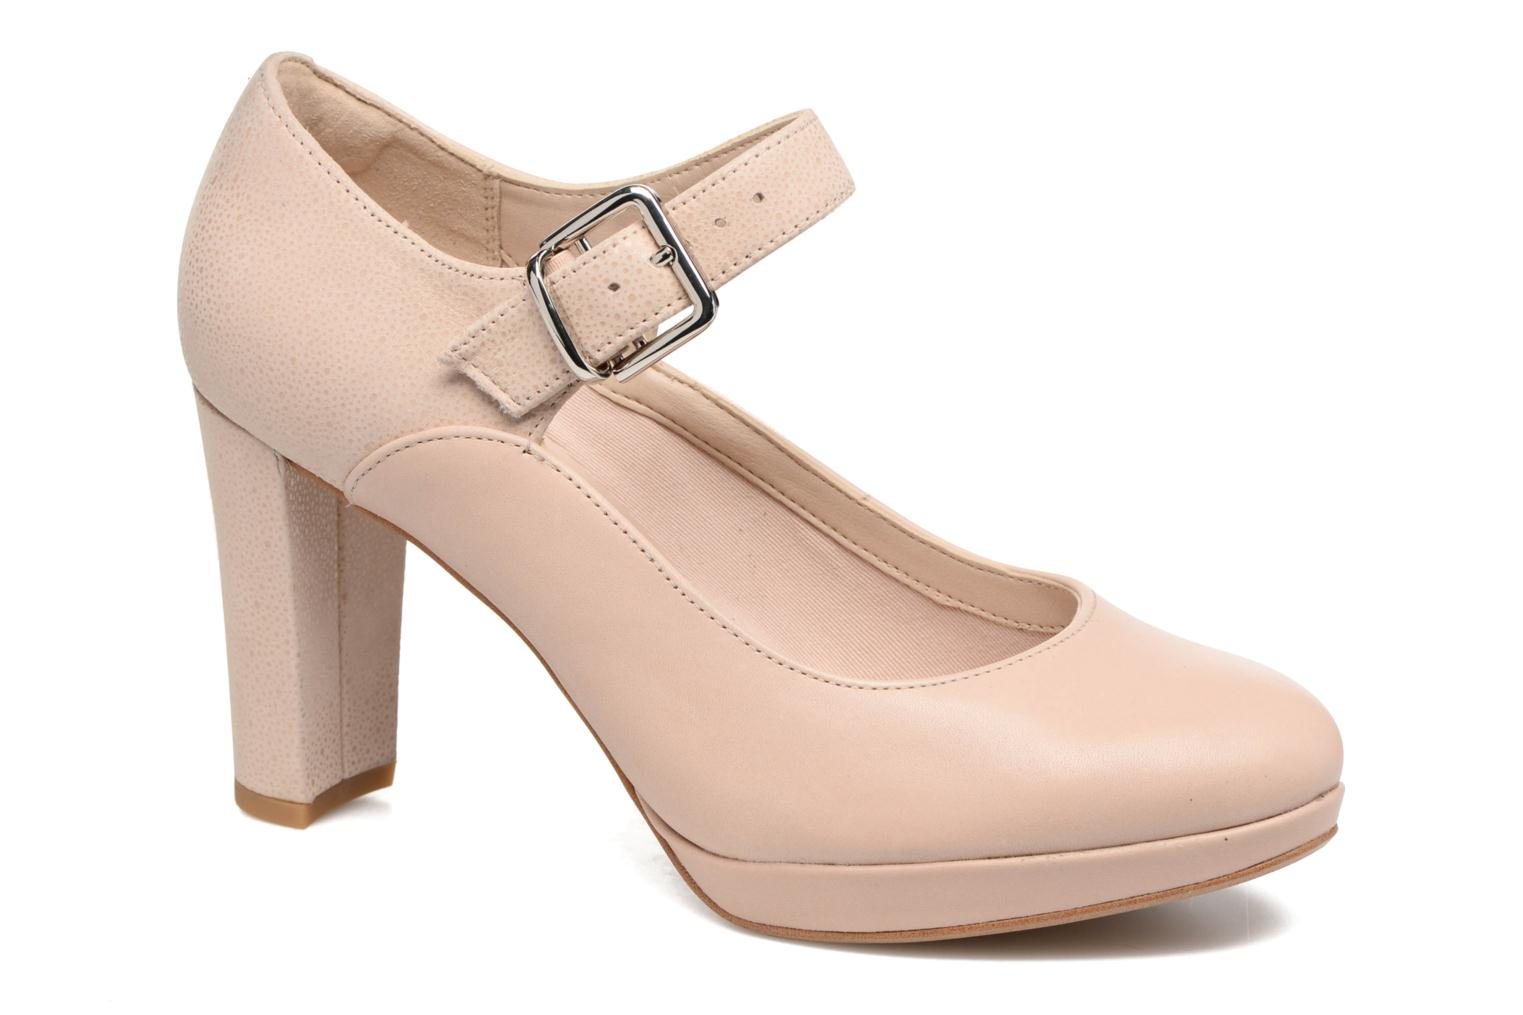 Marques Chaussure femme Clarks femme Kendra Gaby Nude combi